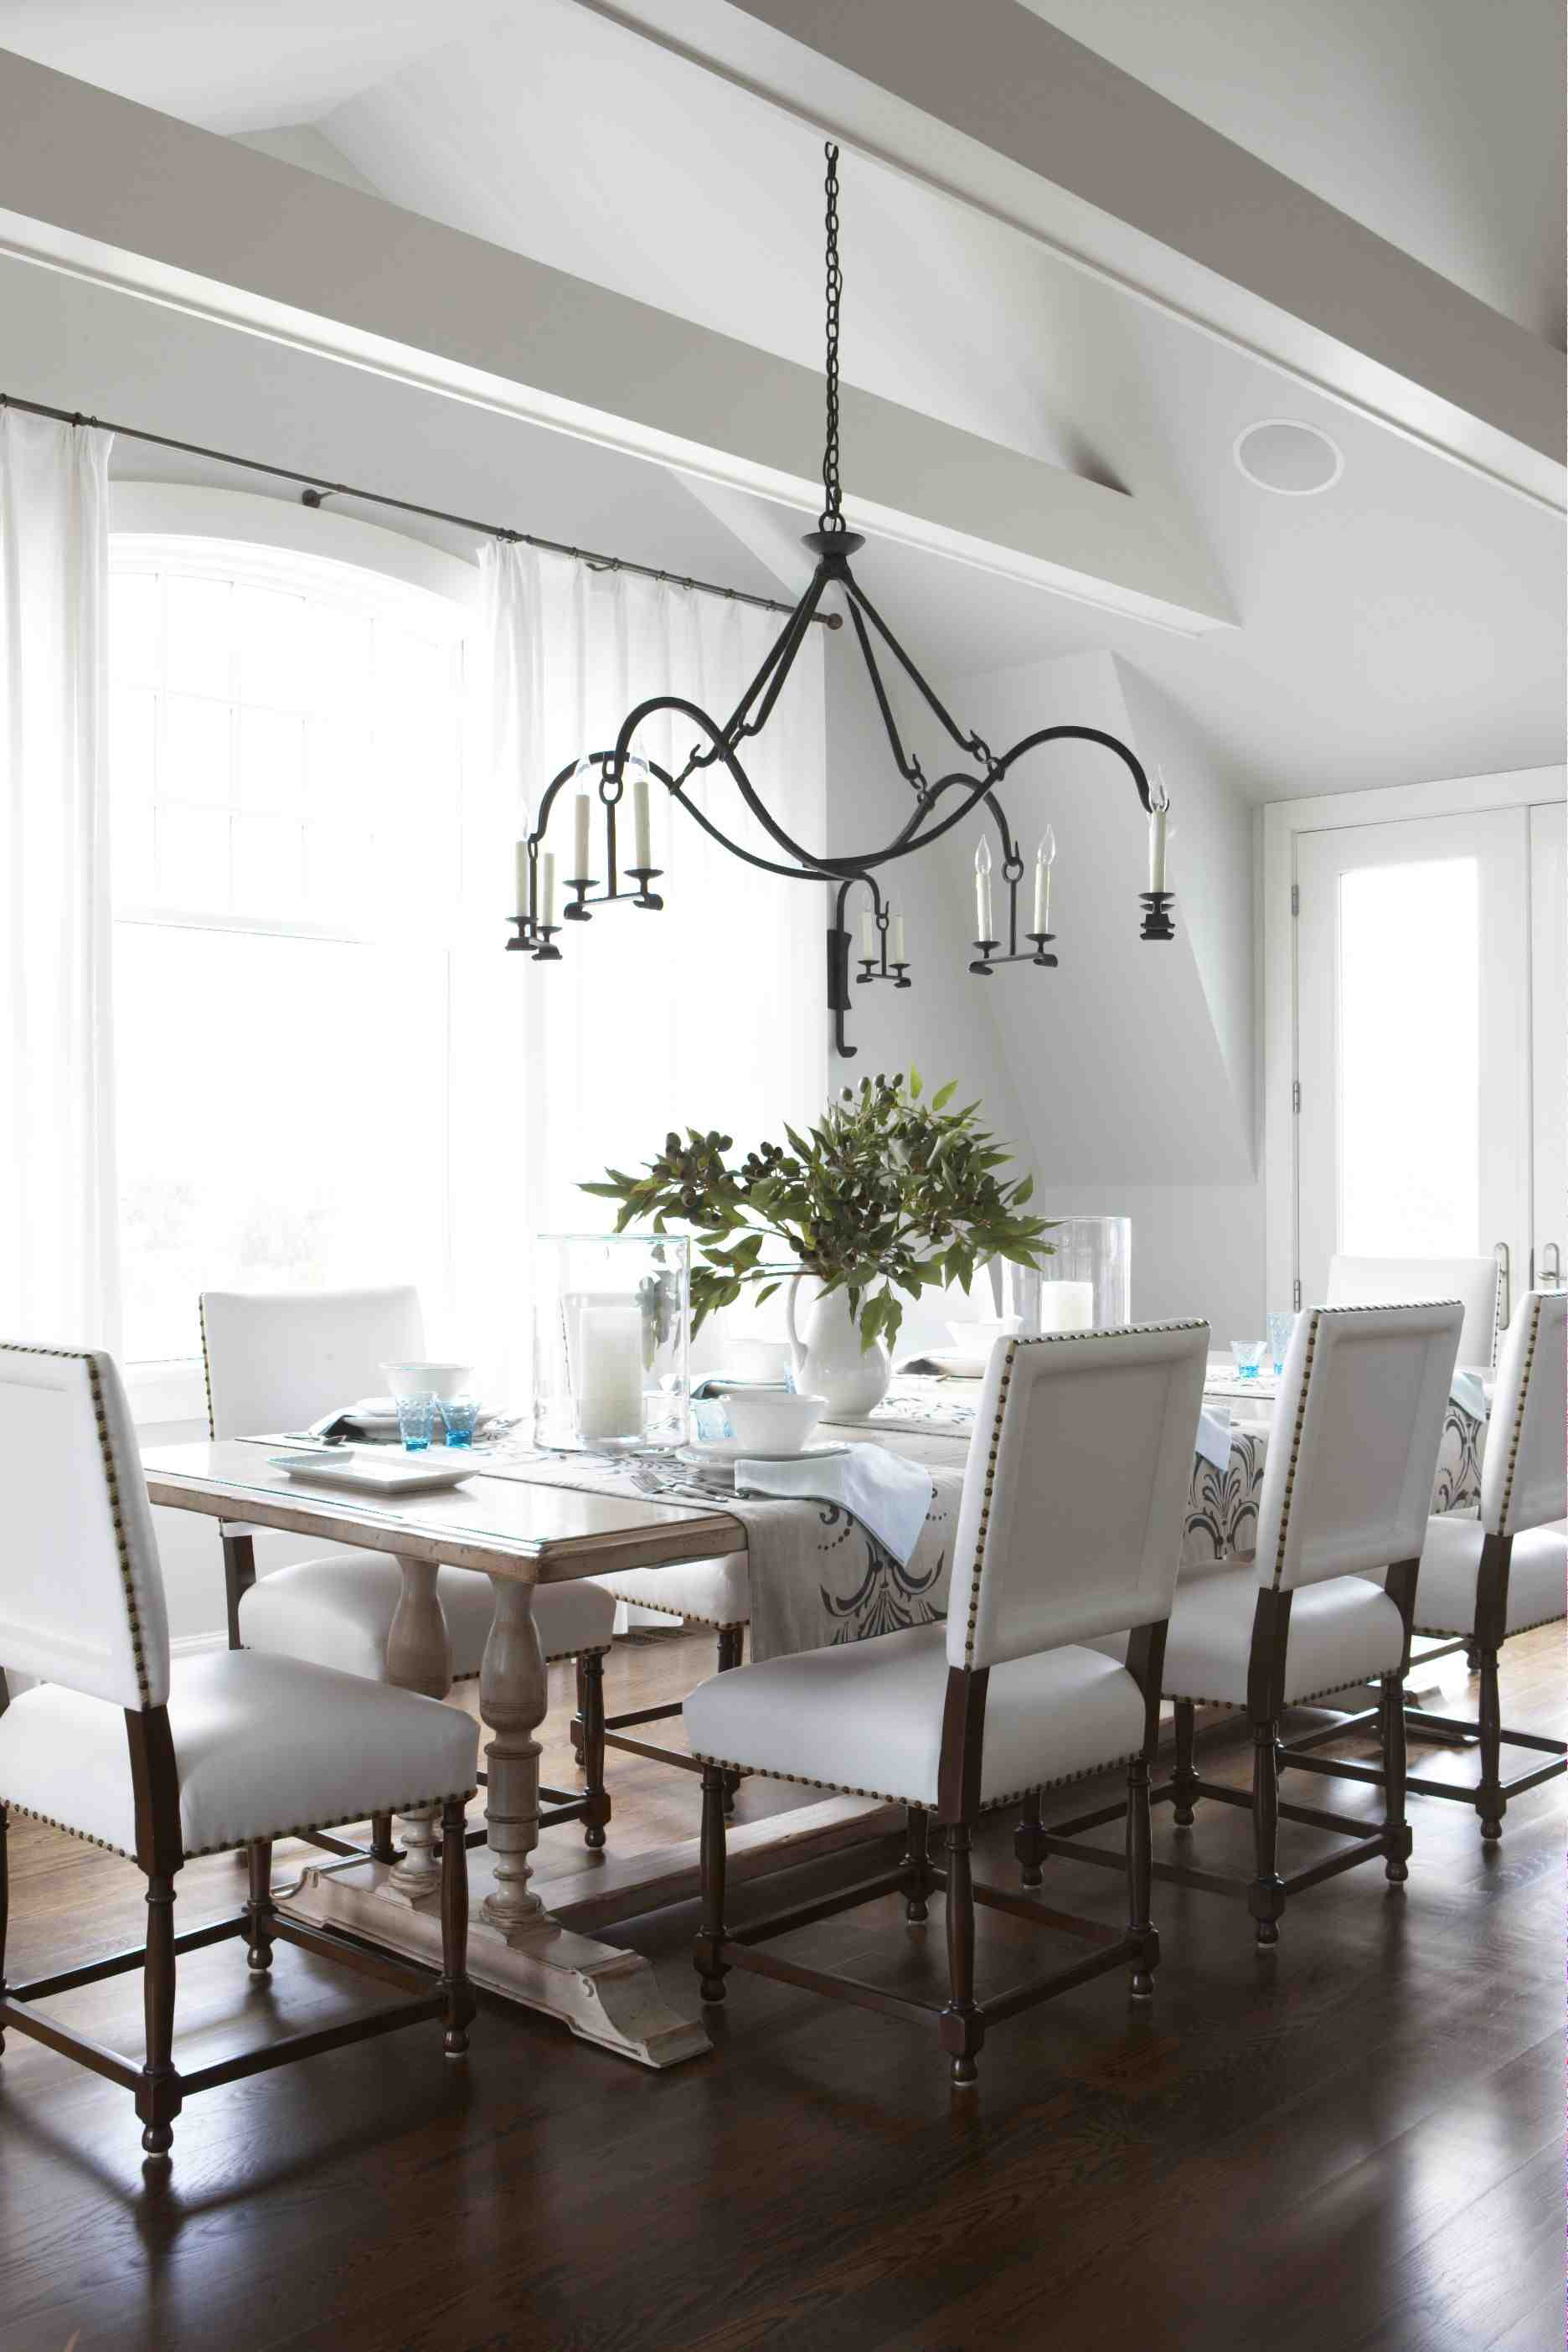 Dining Room Ideas Blog Style Archiveawash In White Stacystyle 39s Blog